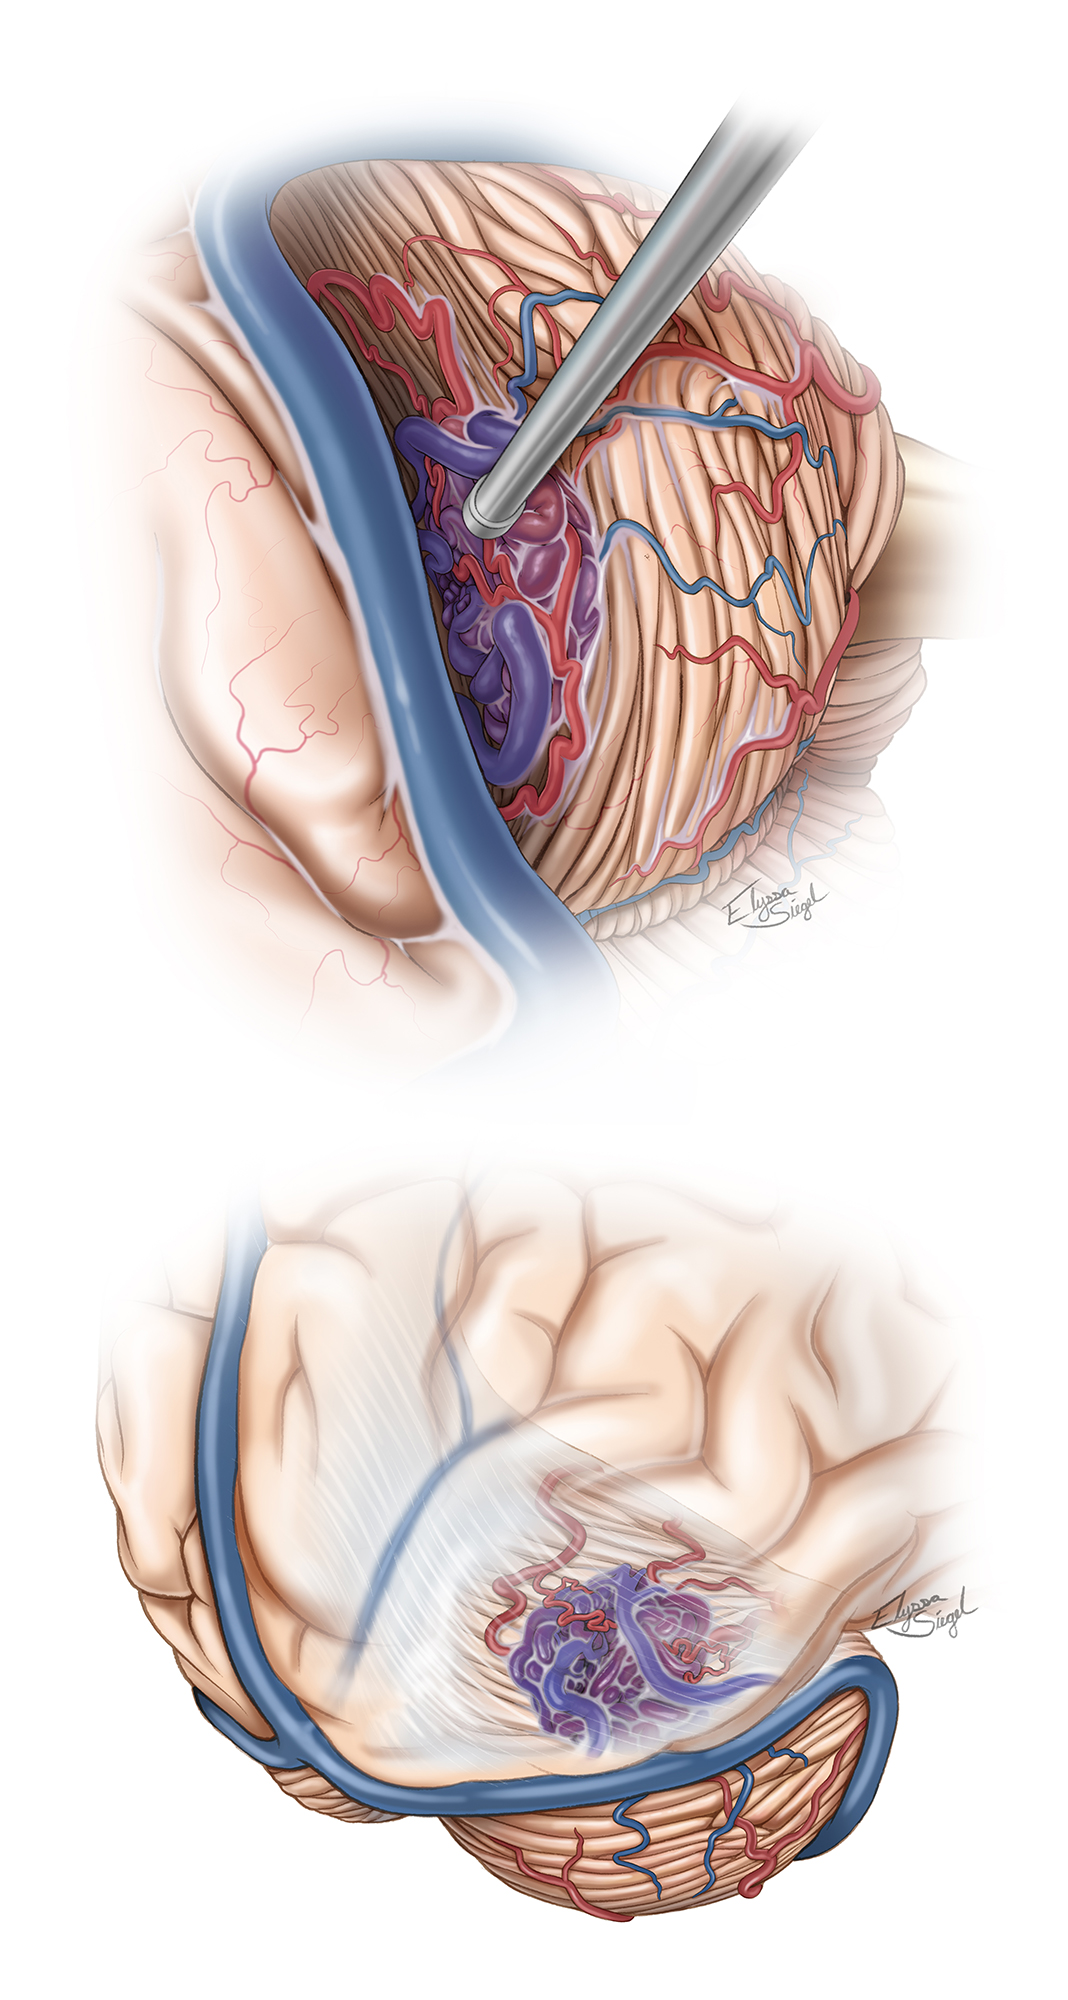 Figure 5: The surgeon's view (top) of a classic tentorial AVM is demonstrated. Note the supplying arteries and draining veins. An additional view for identification of the angioarchitecture is shown in the second sketch. The bridging AVM-associated draining veins should be preserved during superacerebellar dissection. Some of these veins join the vein of Galen by travelling over the cerebellum.